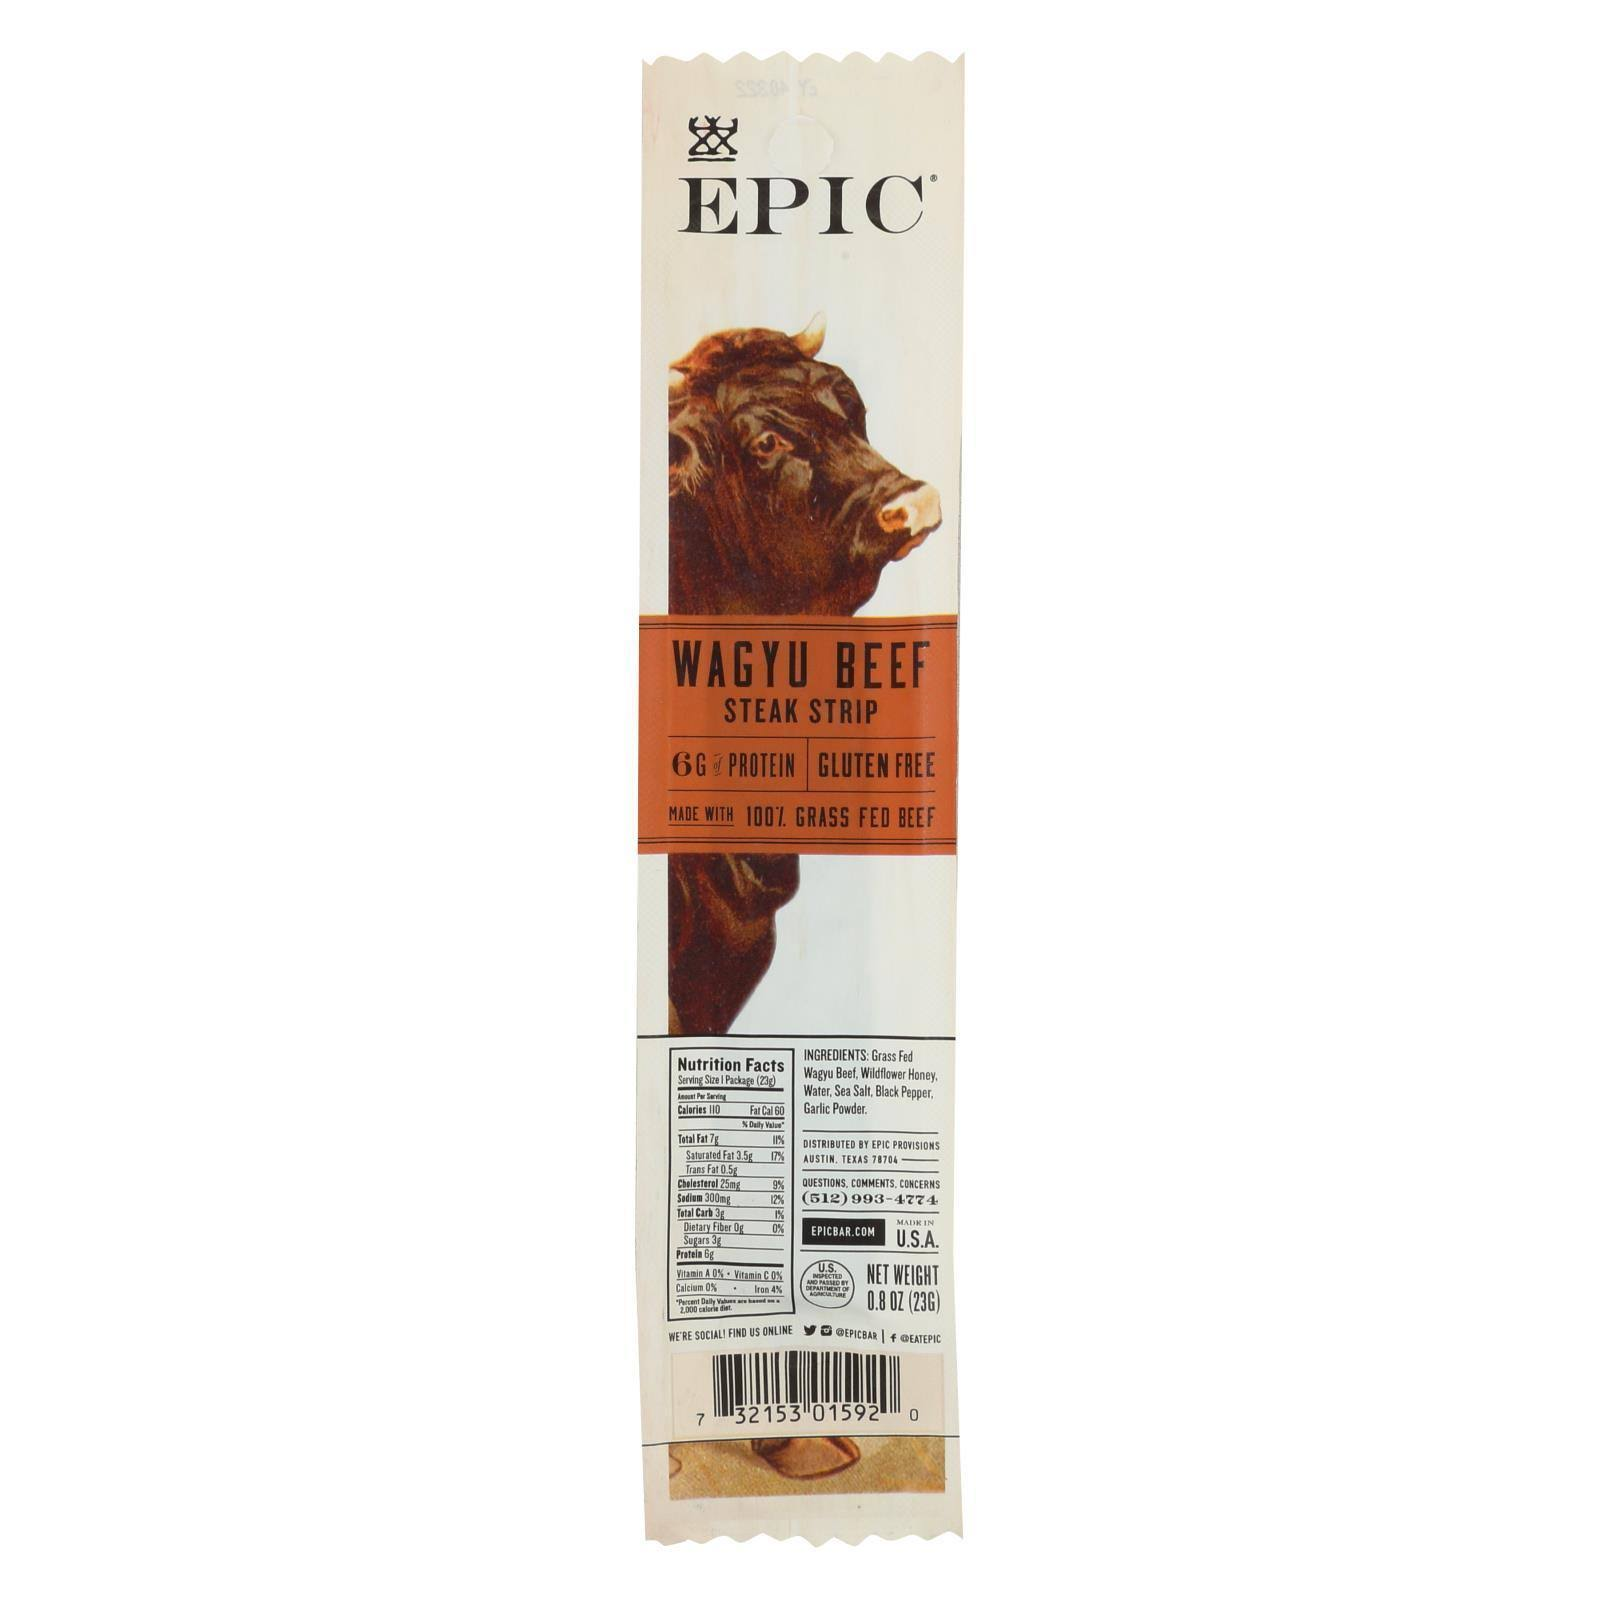 Epic Wagyu Beef Steak Snack Strip - 0.8 oz packet